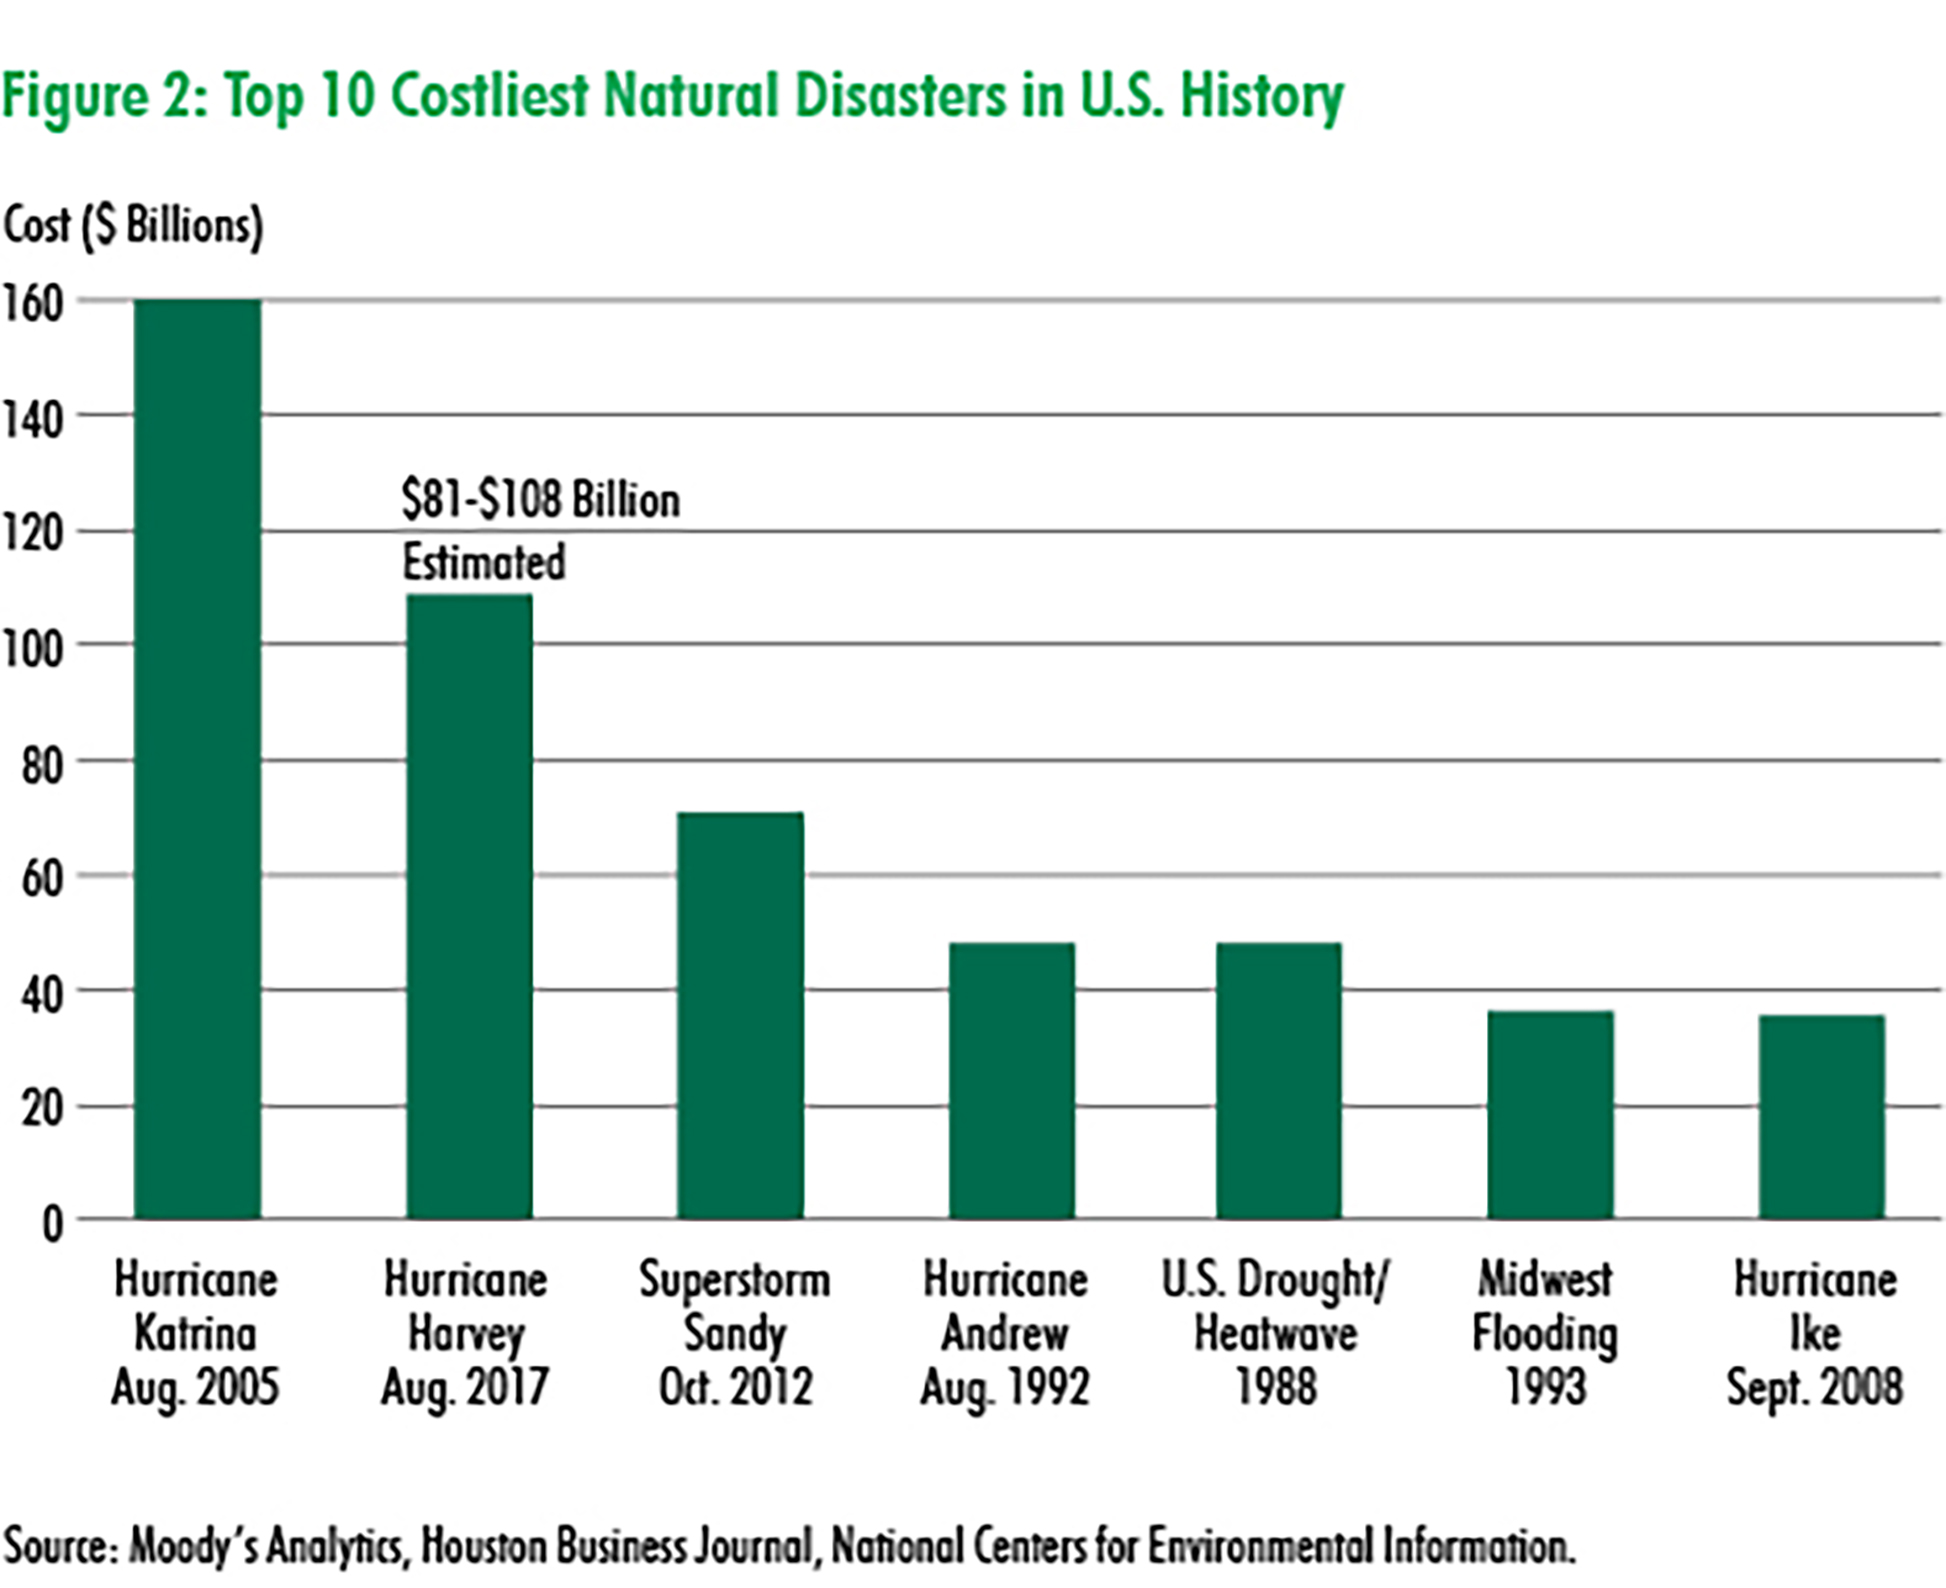 CBRE - Costliest natural disasters in U.S. history